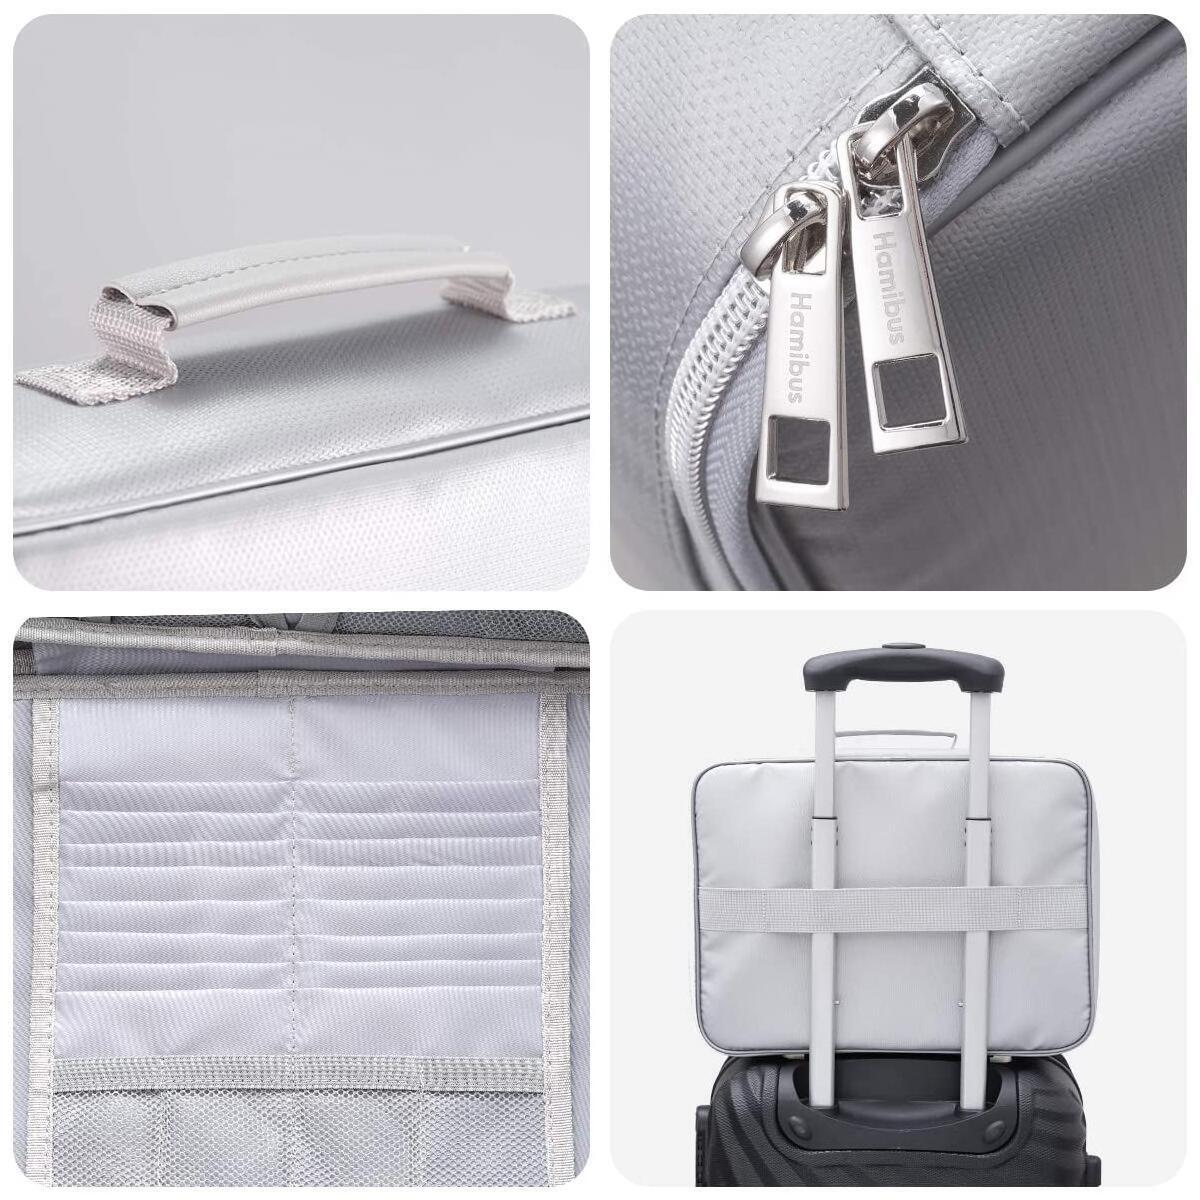 Fireproof Document Bag Storage Fire & Water Resistant Briefcase Zip Closure File Organizer Safe Accessories